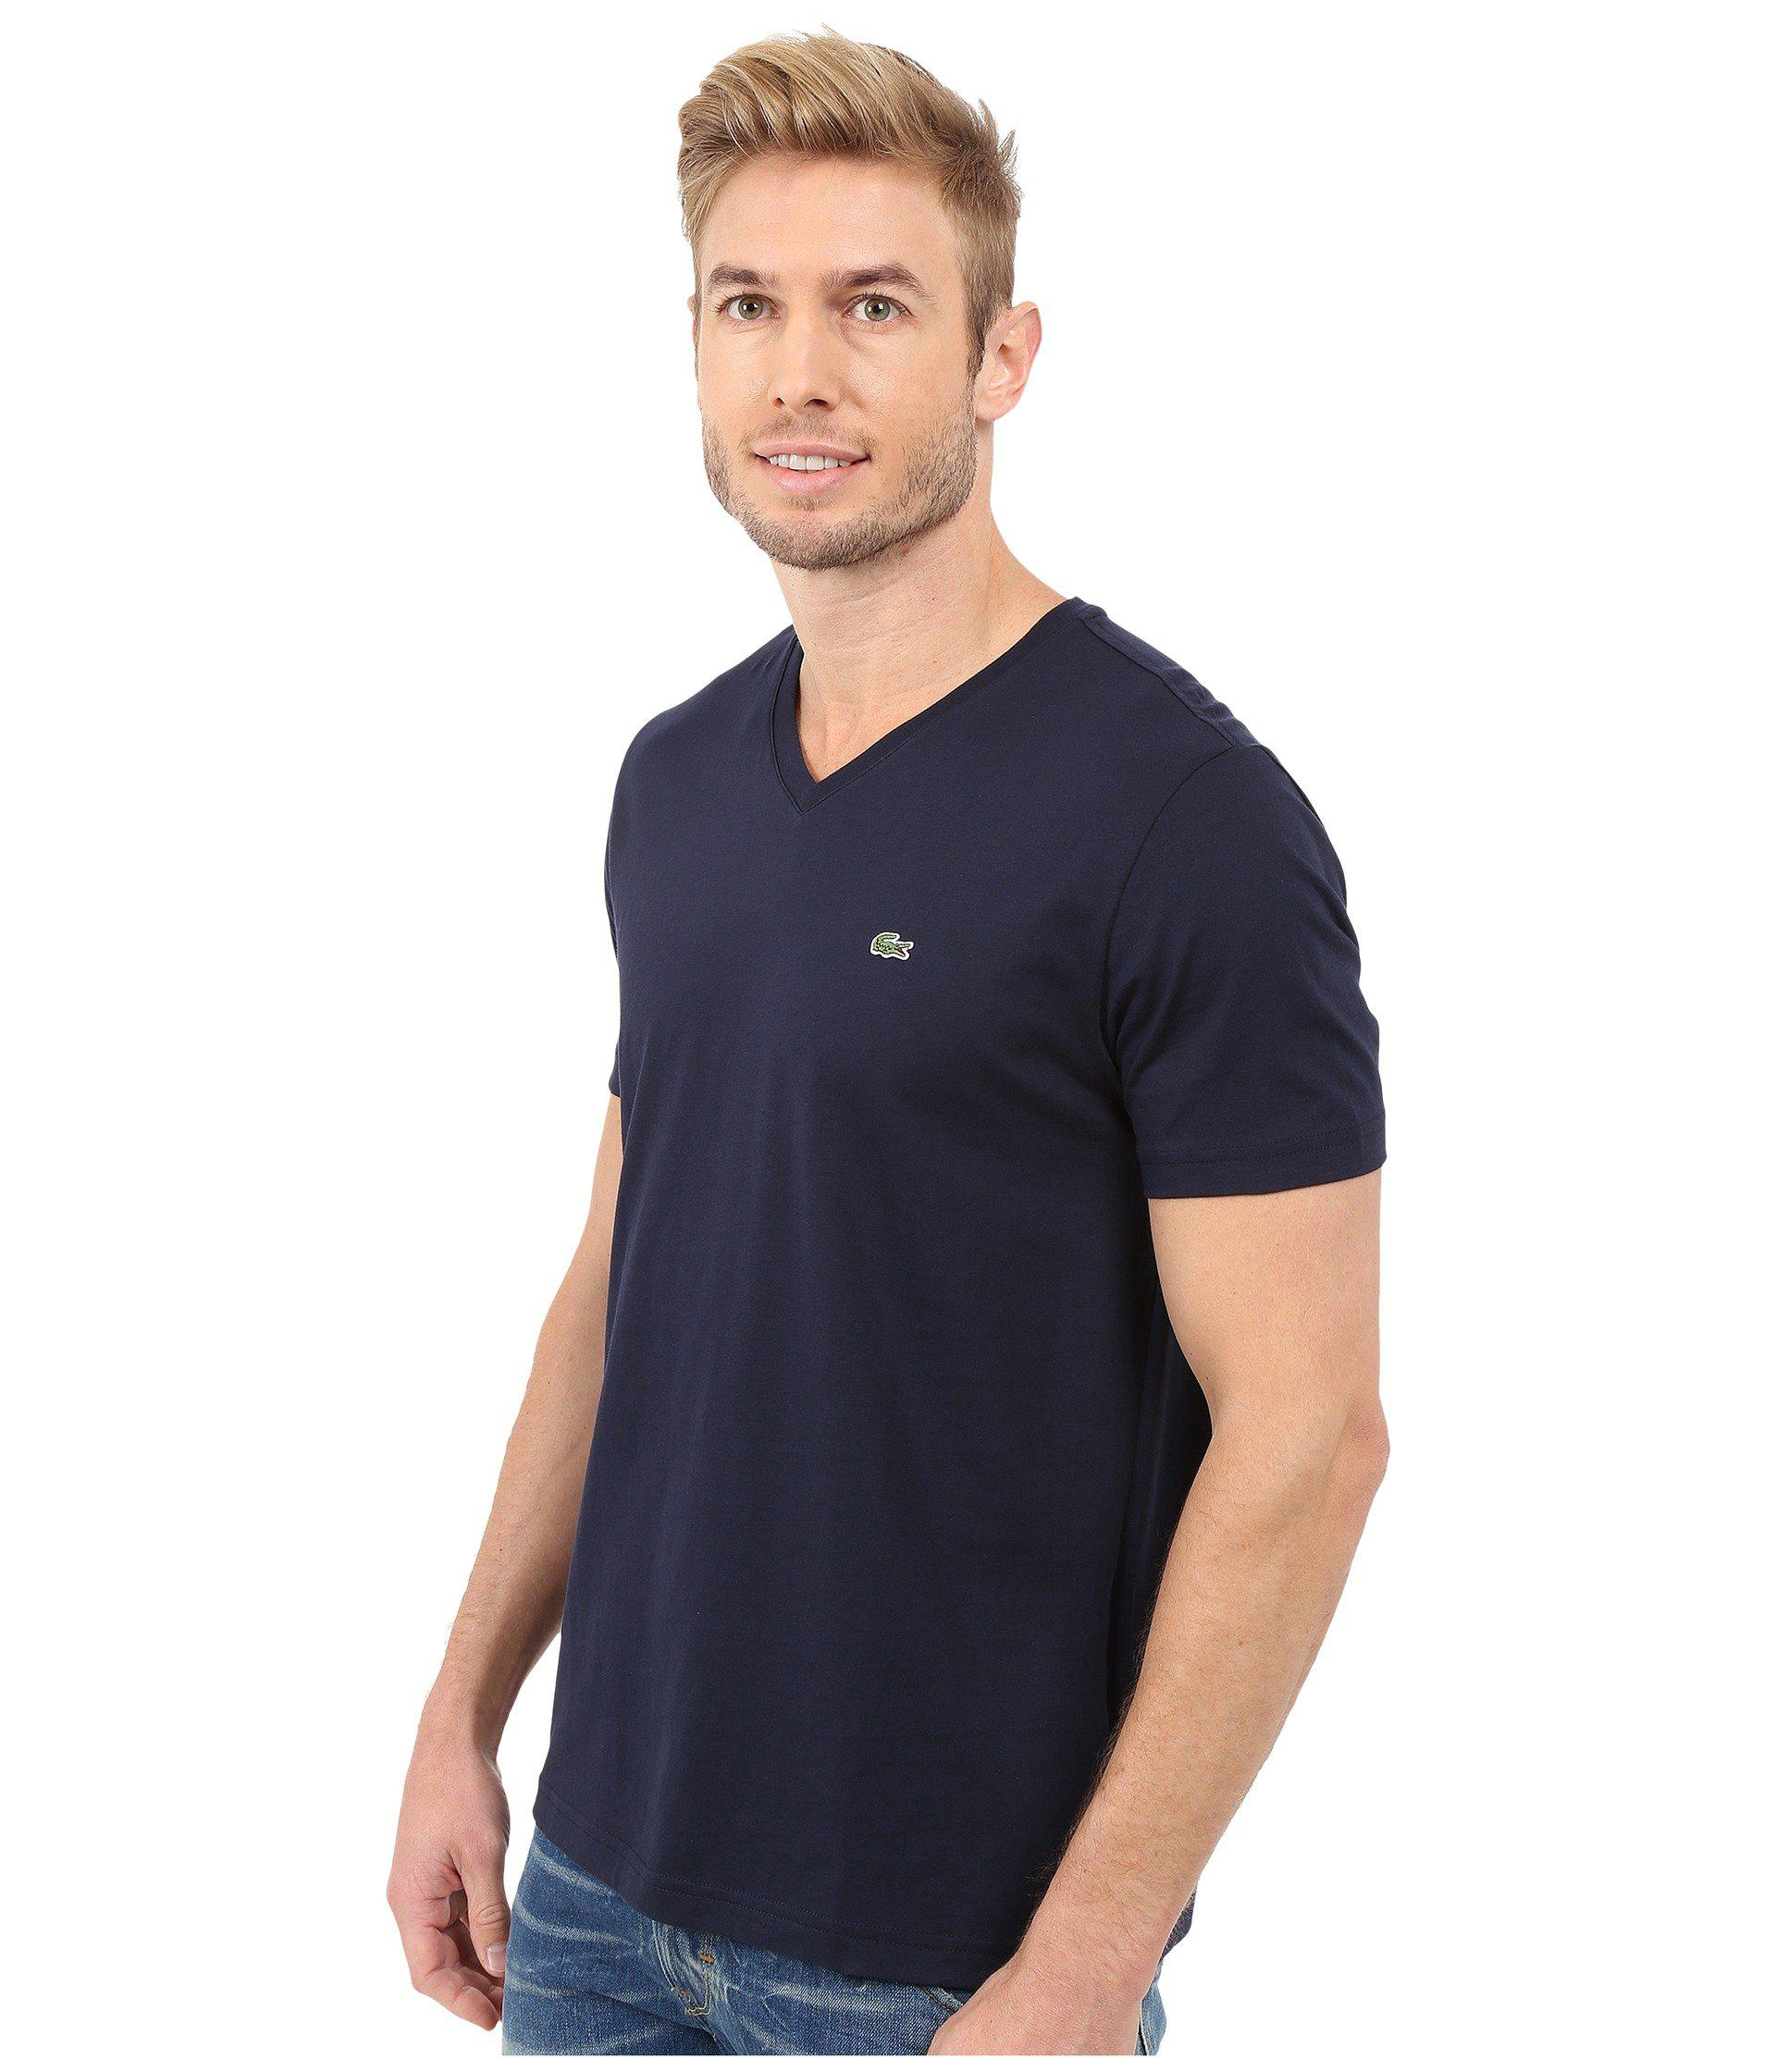 28b907e8cb6b Lyst - Lacoste Short Sleeve Pima Jersey V-neck T-shirt in Blue for Men